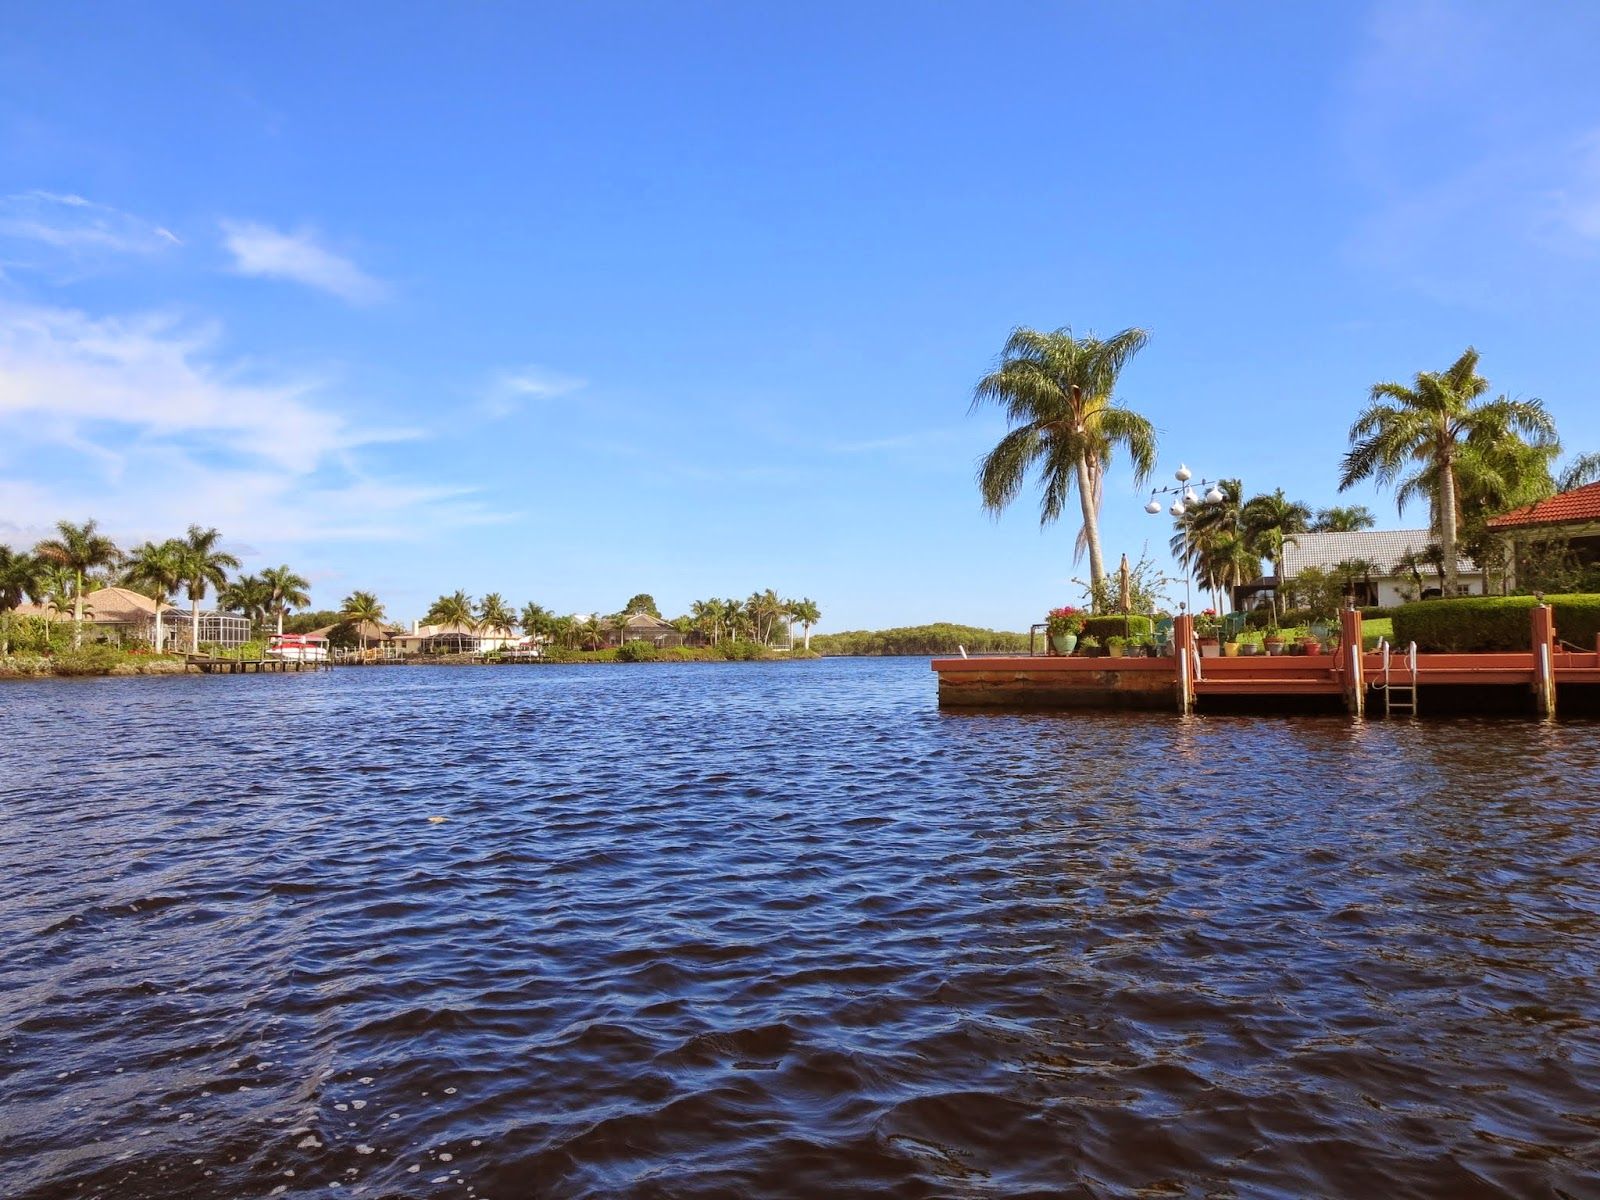 Where to see manatees in Florida: Shallow channel near Port of the Islands Marina in Naples